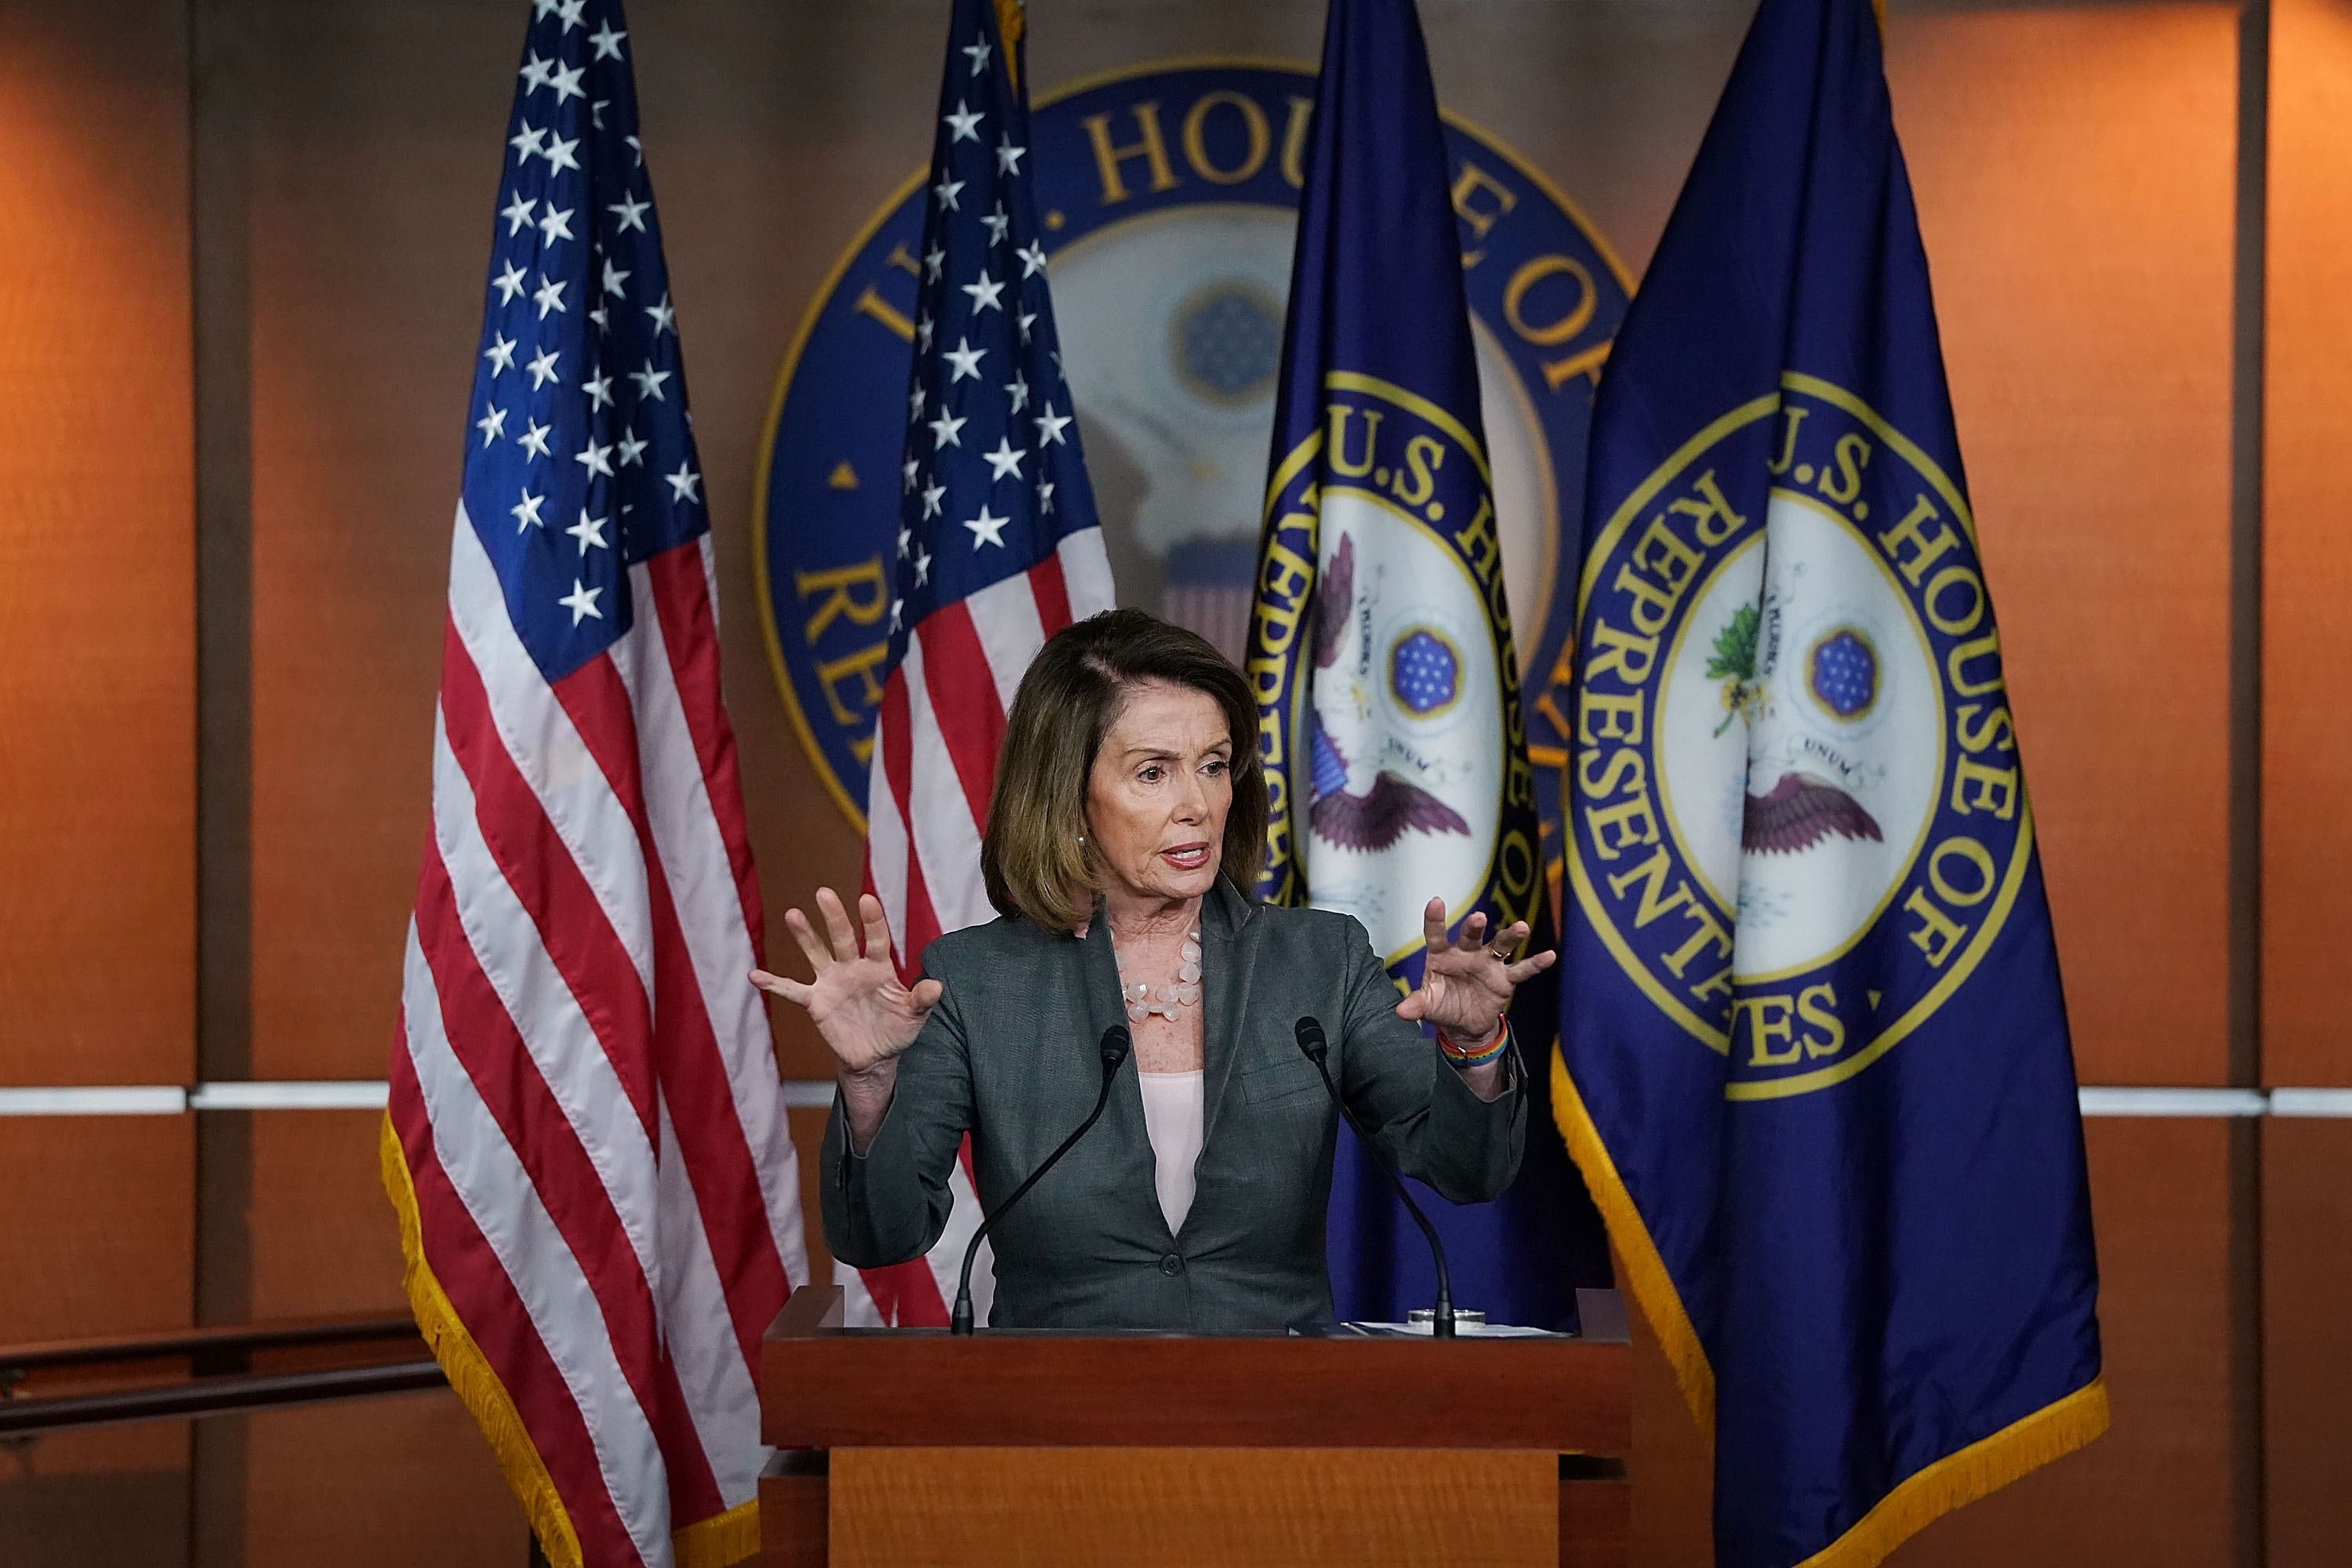 Nancy Pelosi (D-CA) Holds News Conference On Trump Administration's Decision On Iran Nuclear